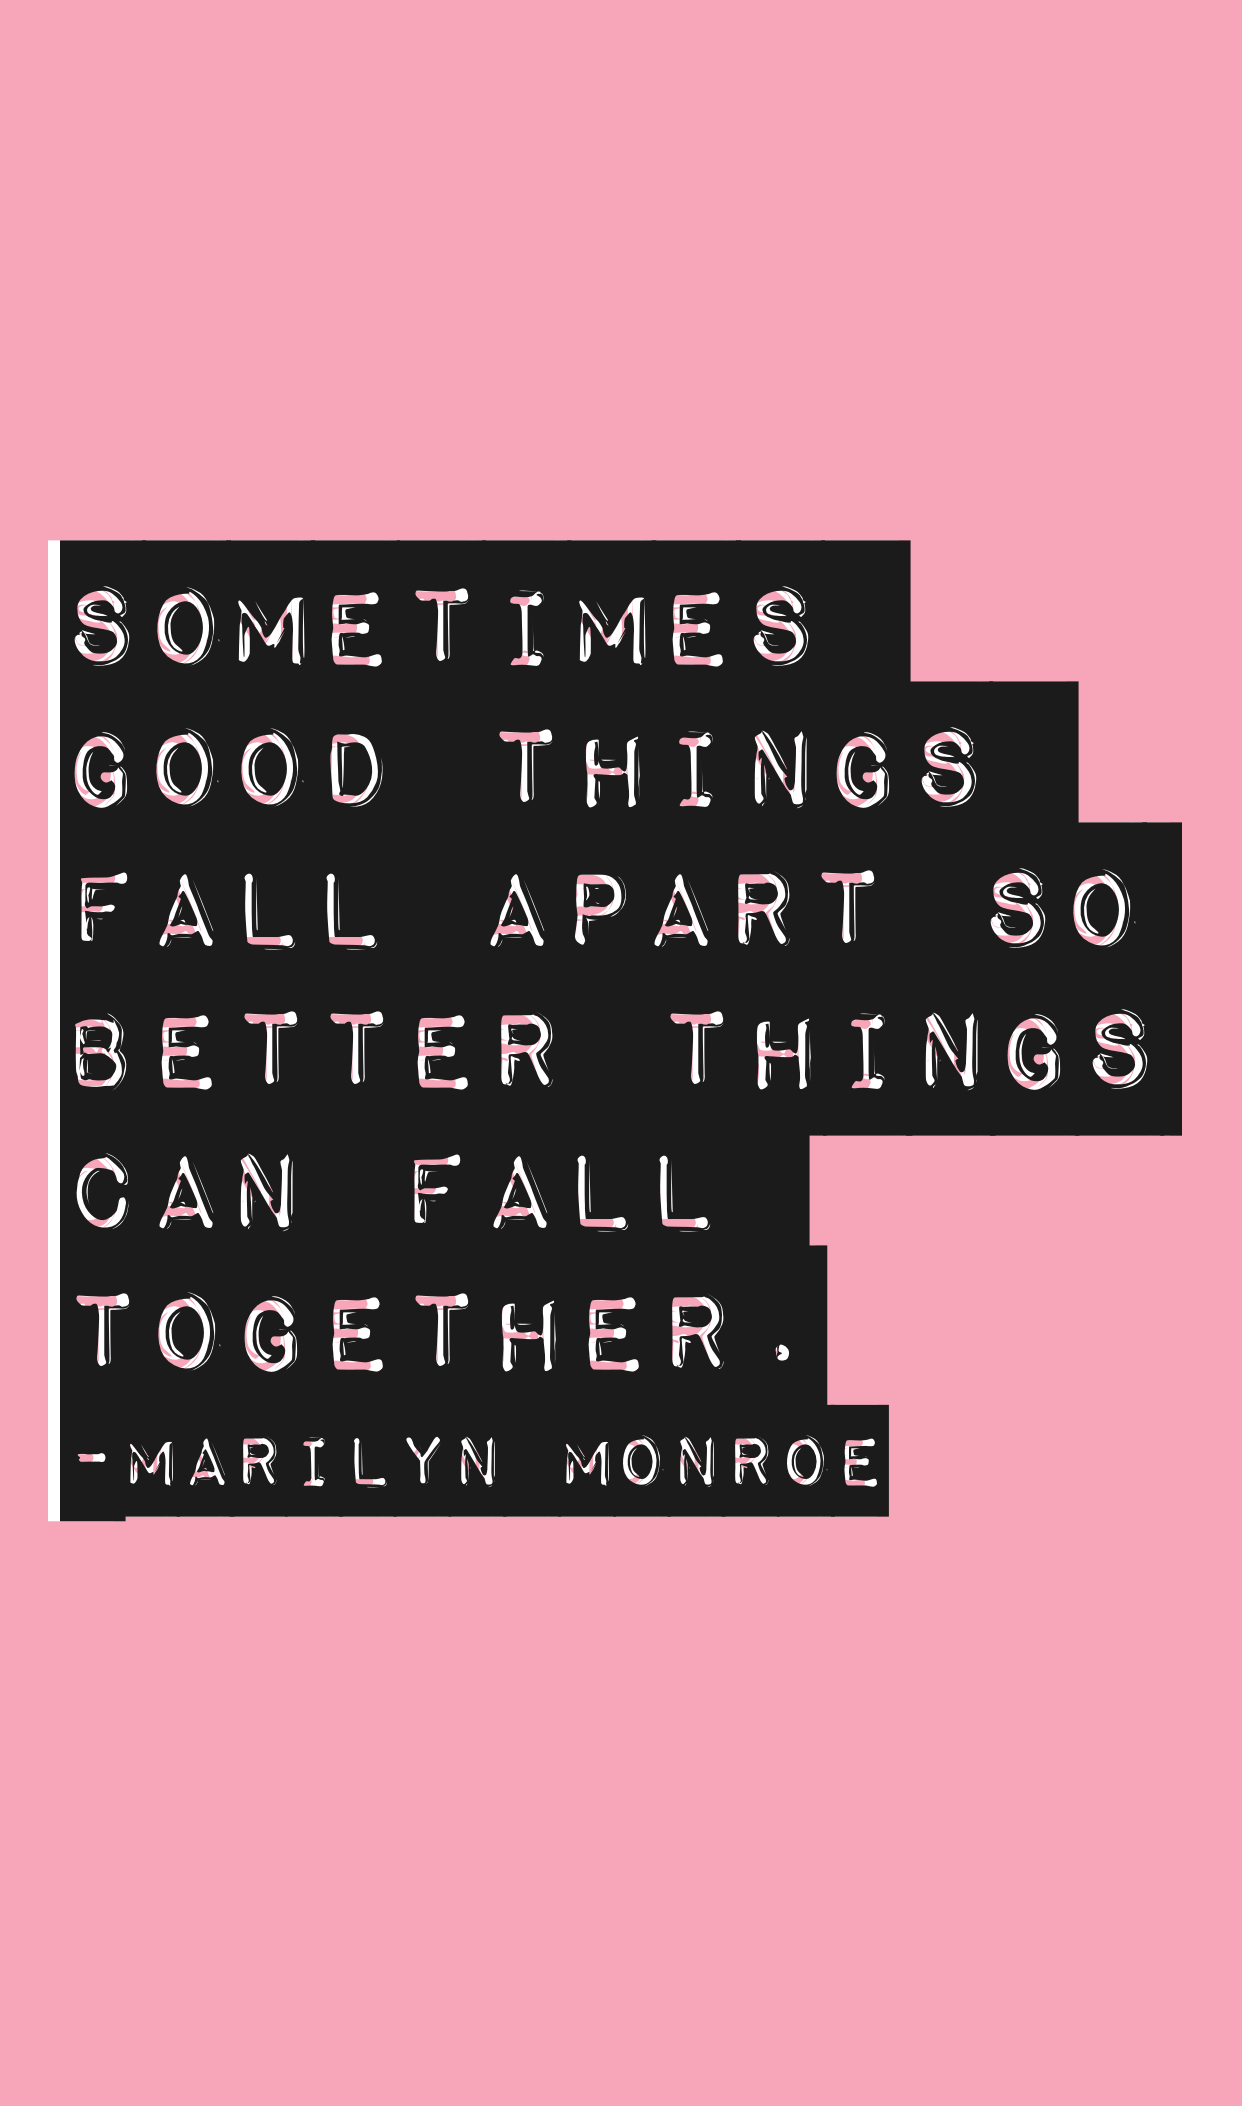 """Sometimes good things fall apart so better things can fall together."" -Marilyn Monroe [1242×2106]"